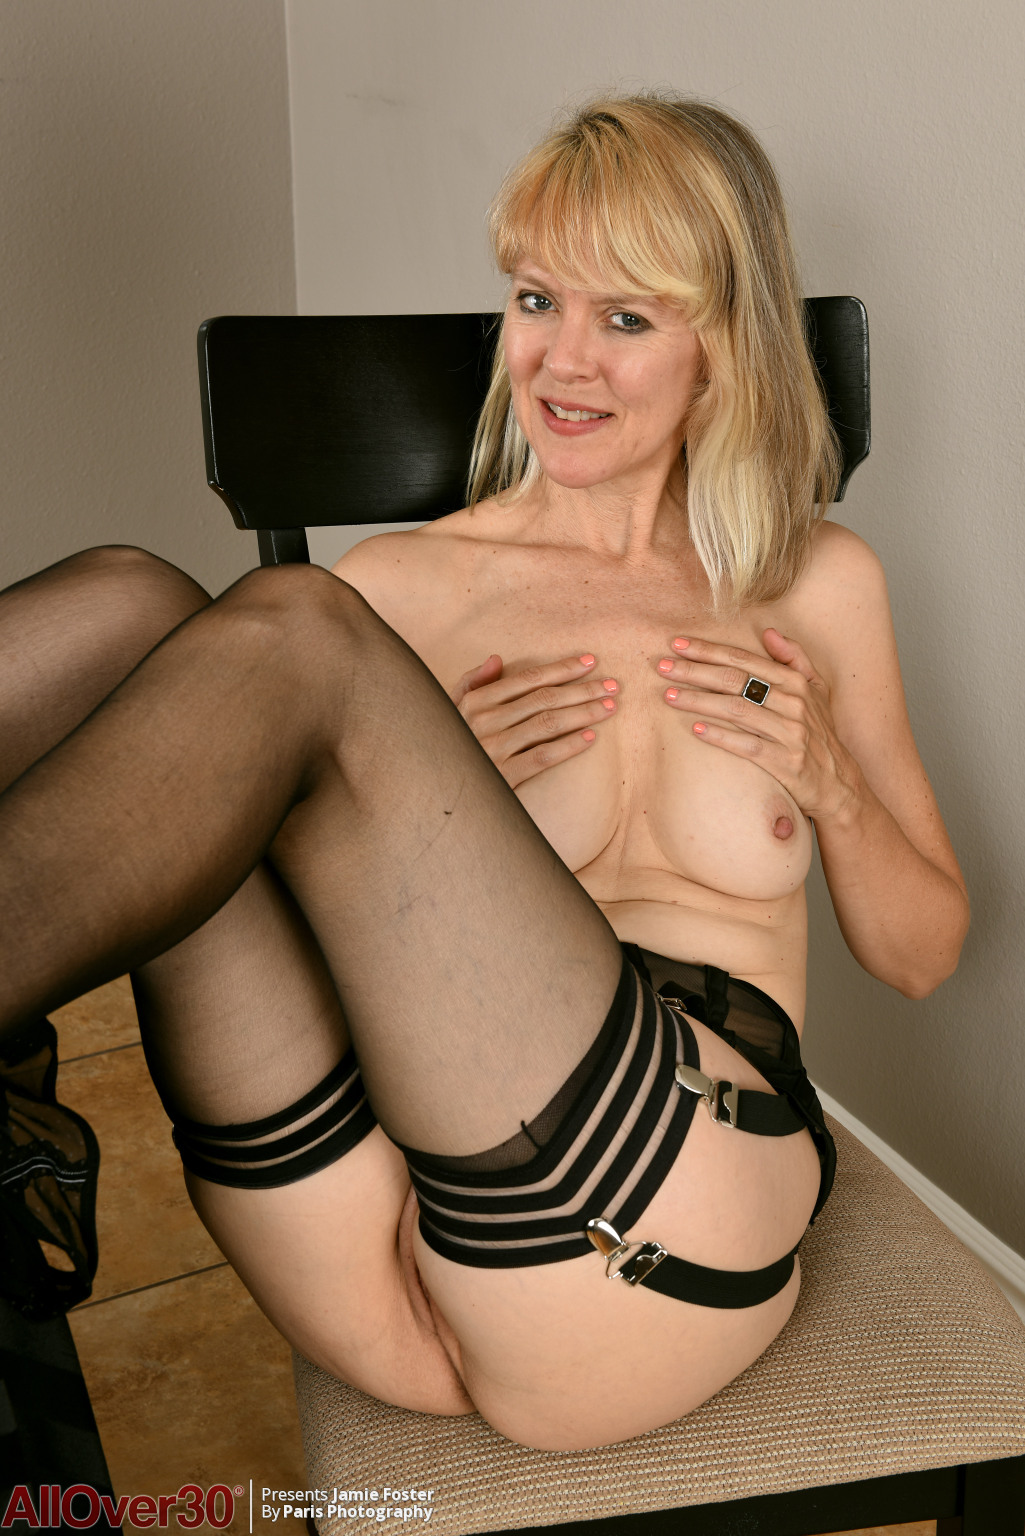 jamie-foster-sexy-stockings-14